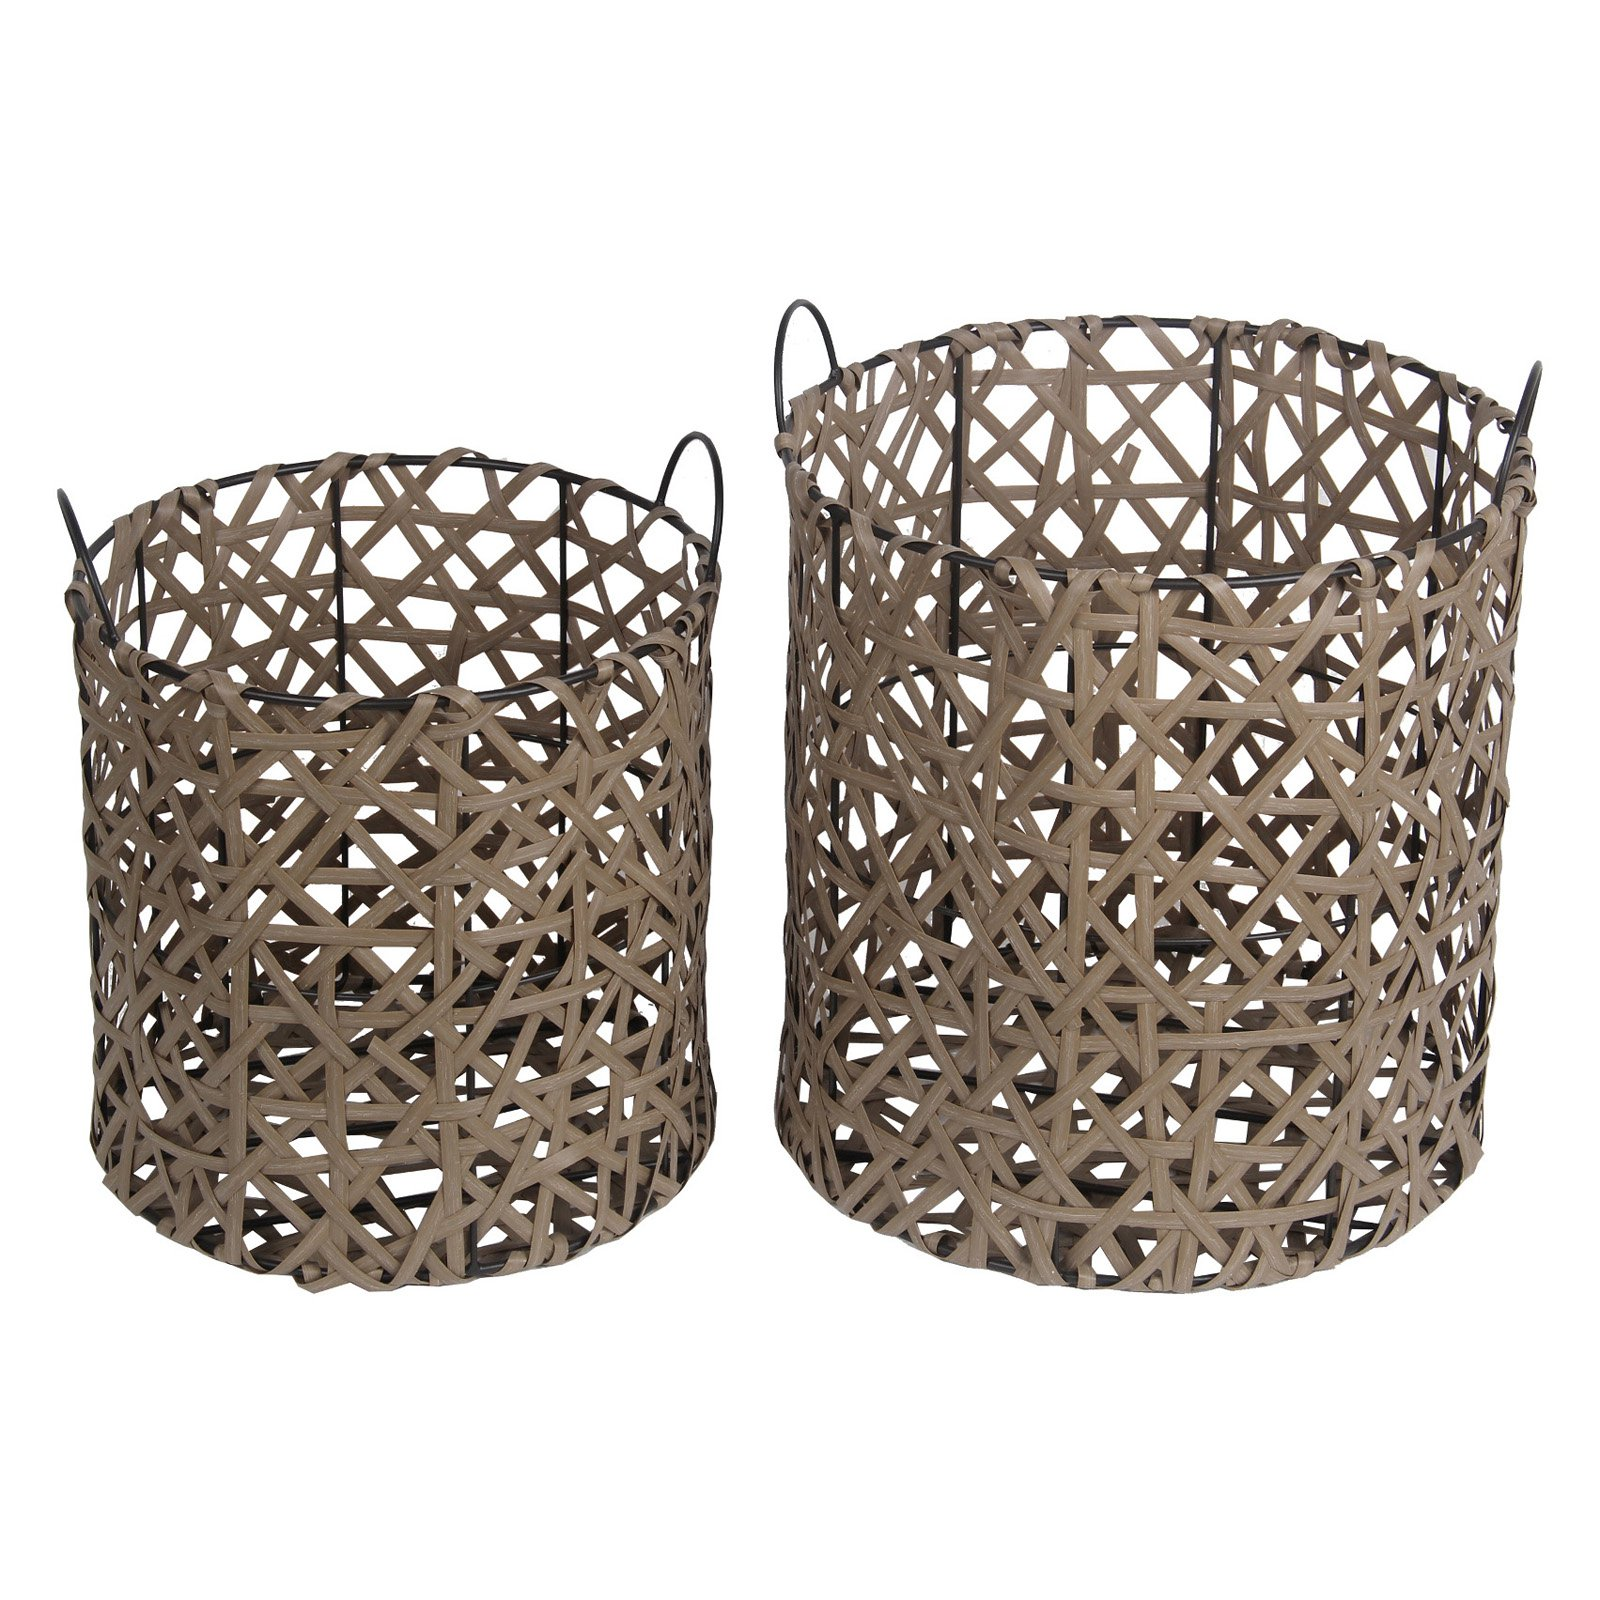 Privilege International Round Wicker Basket Set of 2 by Privilege